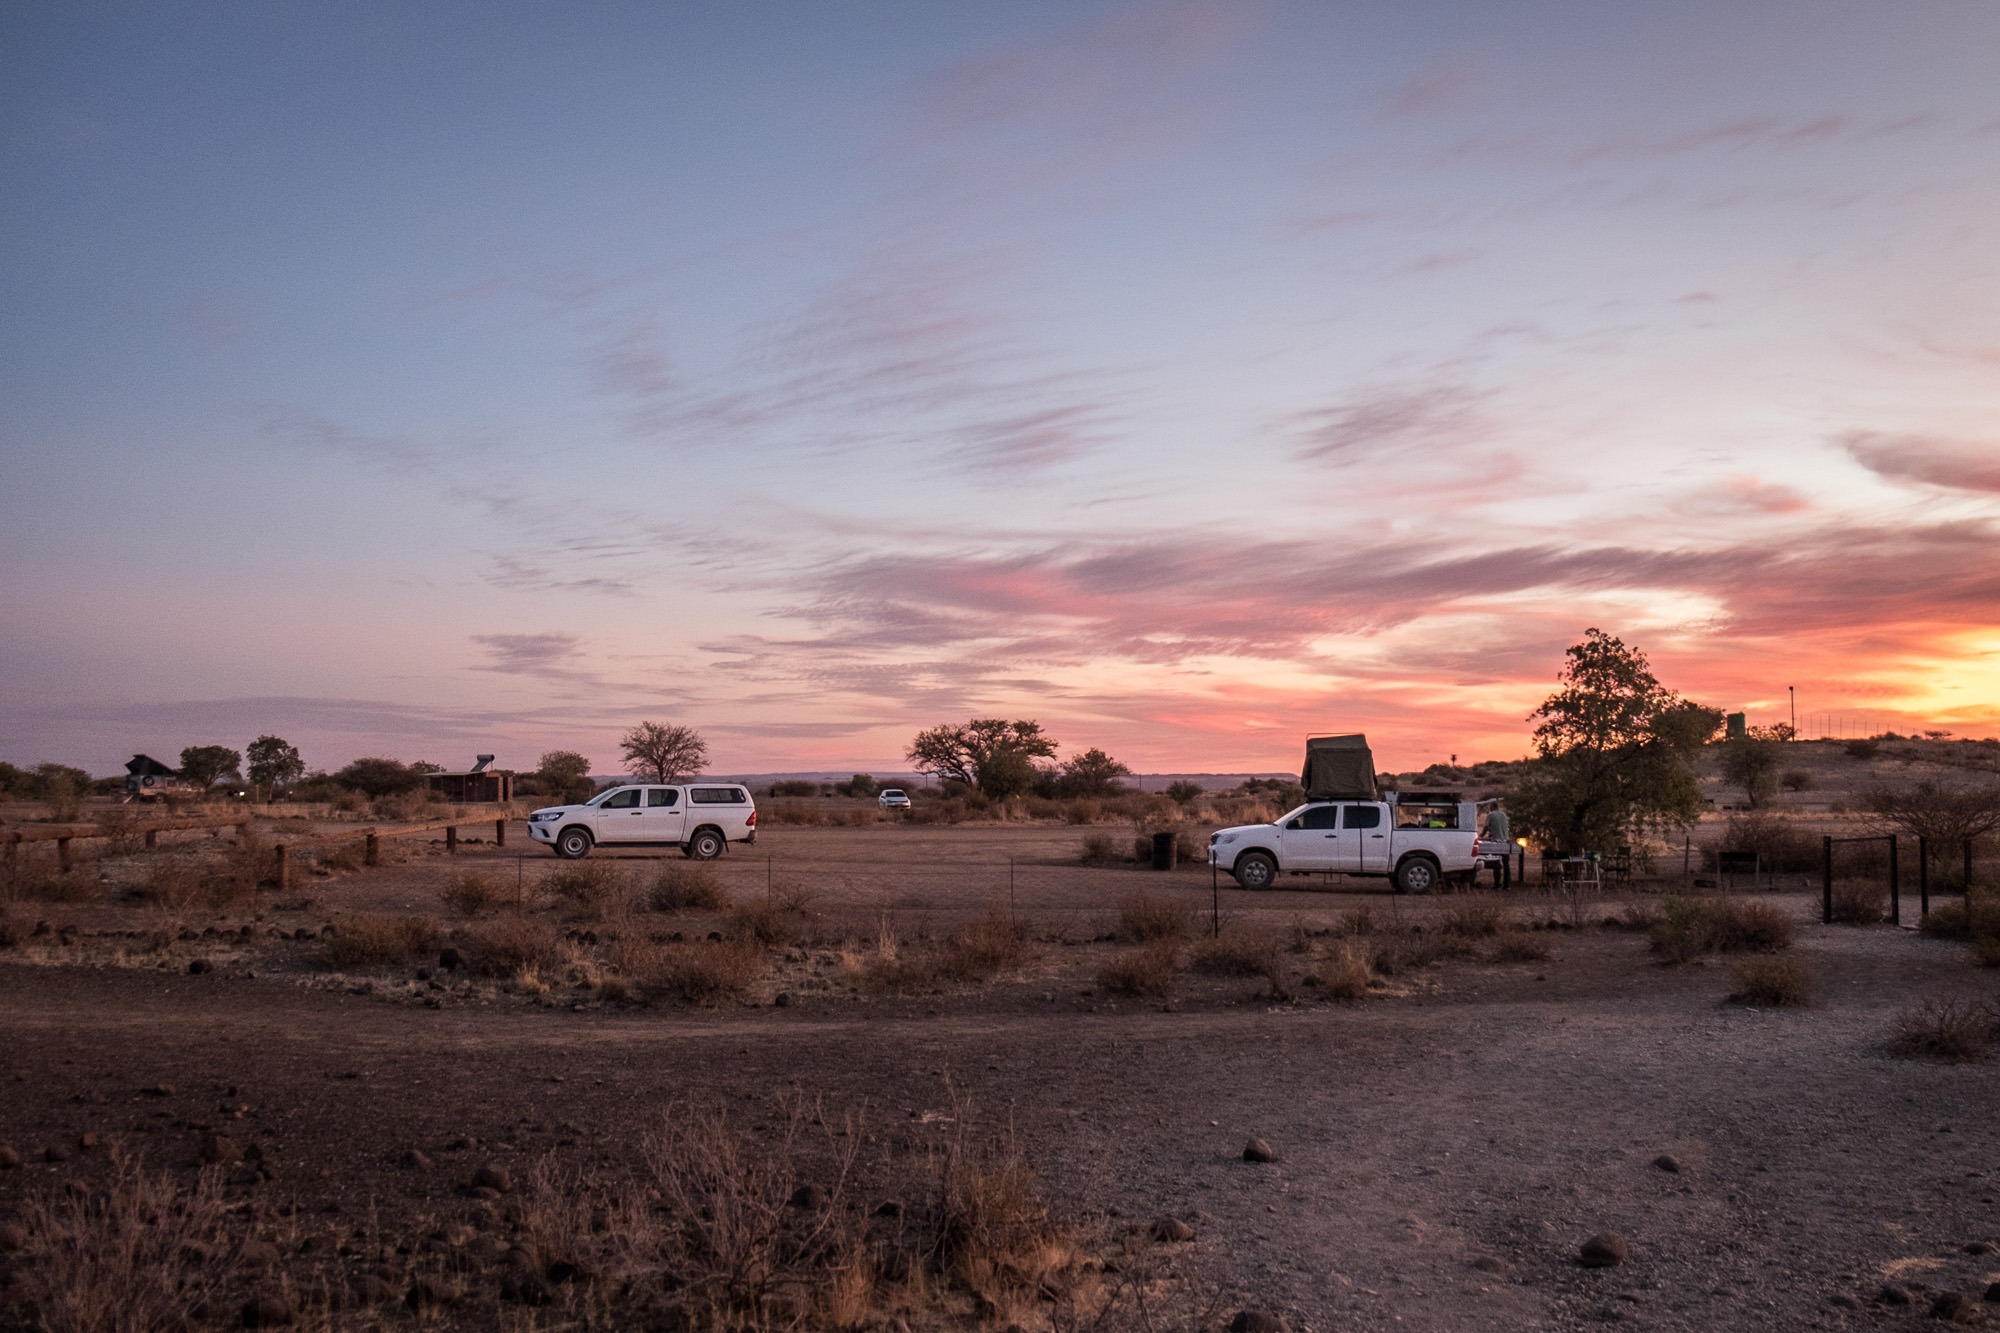 Sonnenuntergang im Quivertree Forest Rest Camp in Namibia